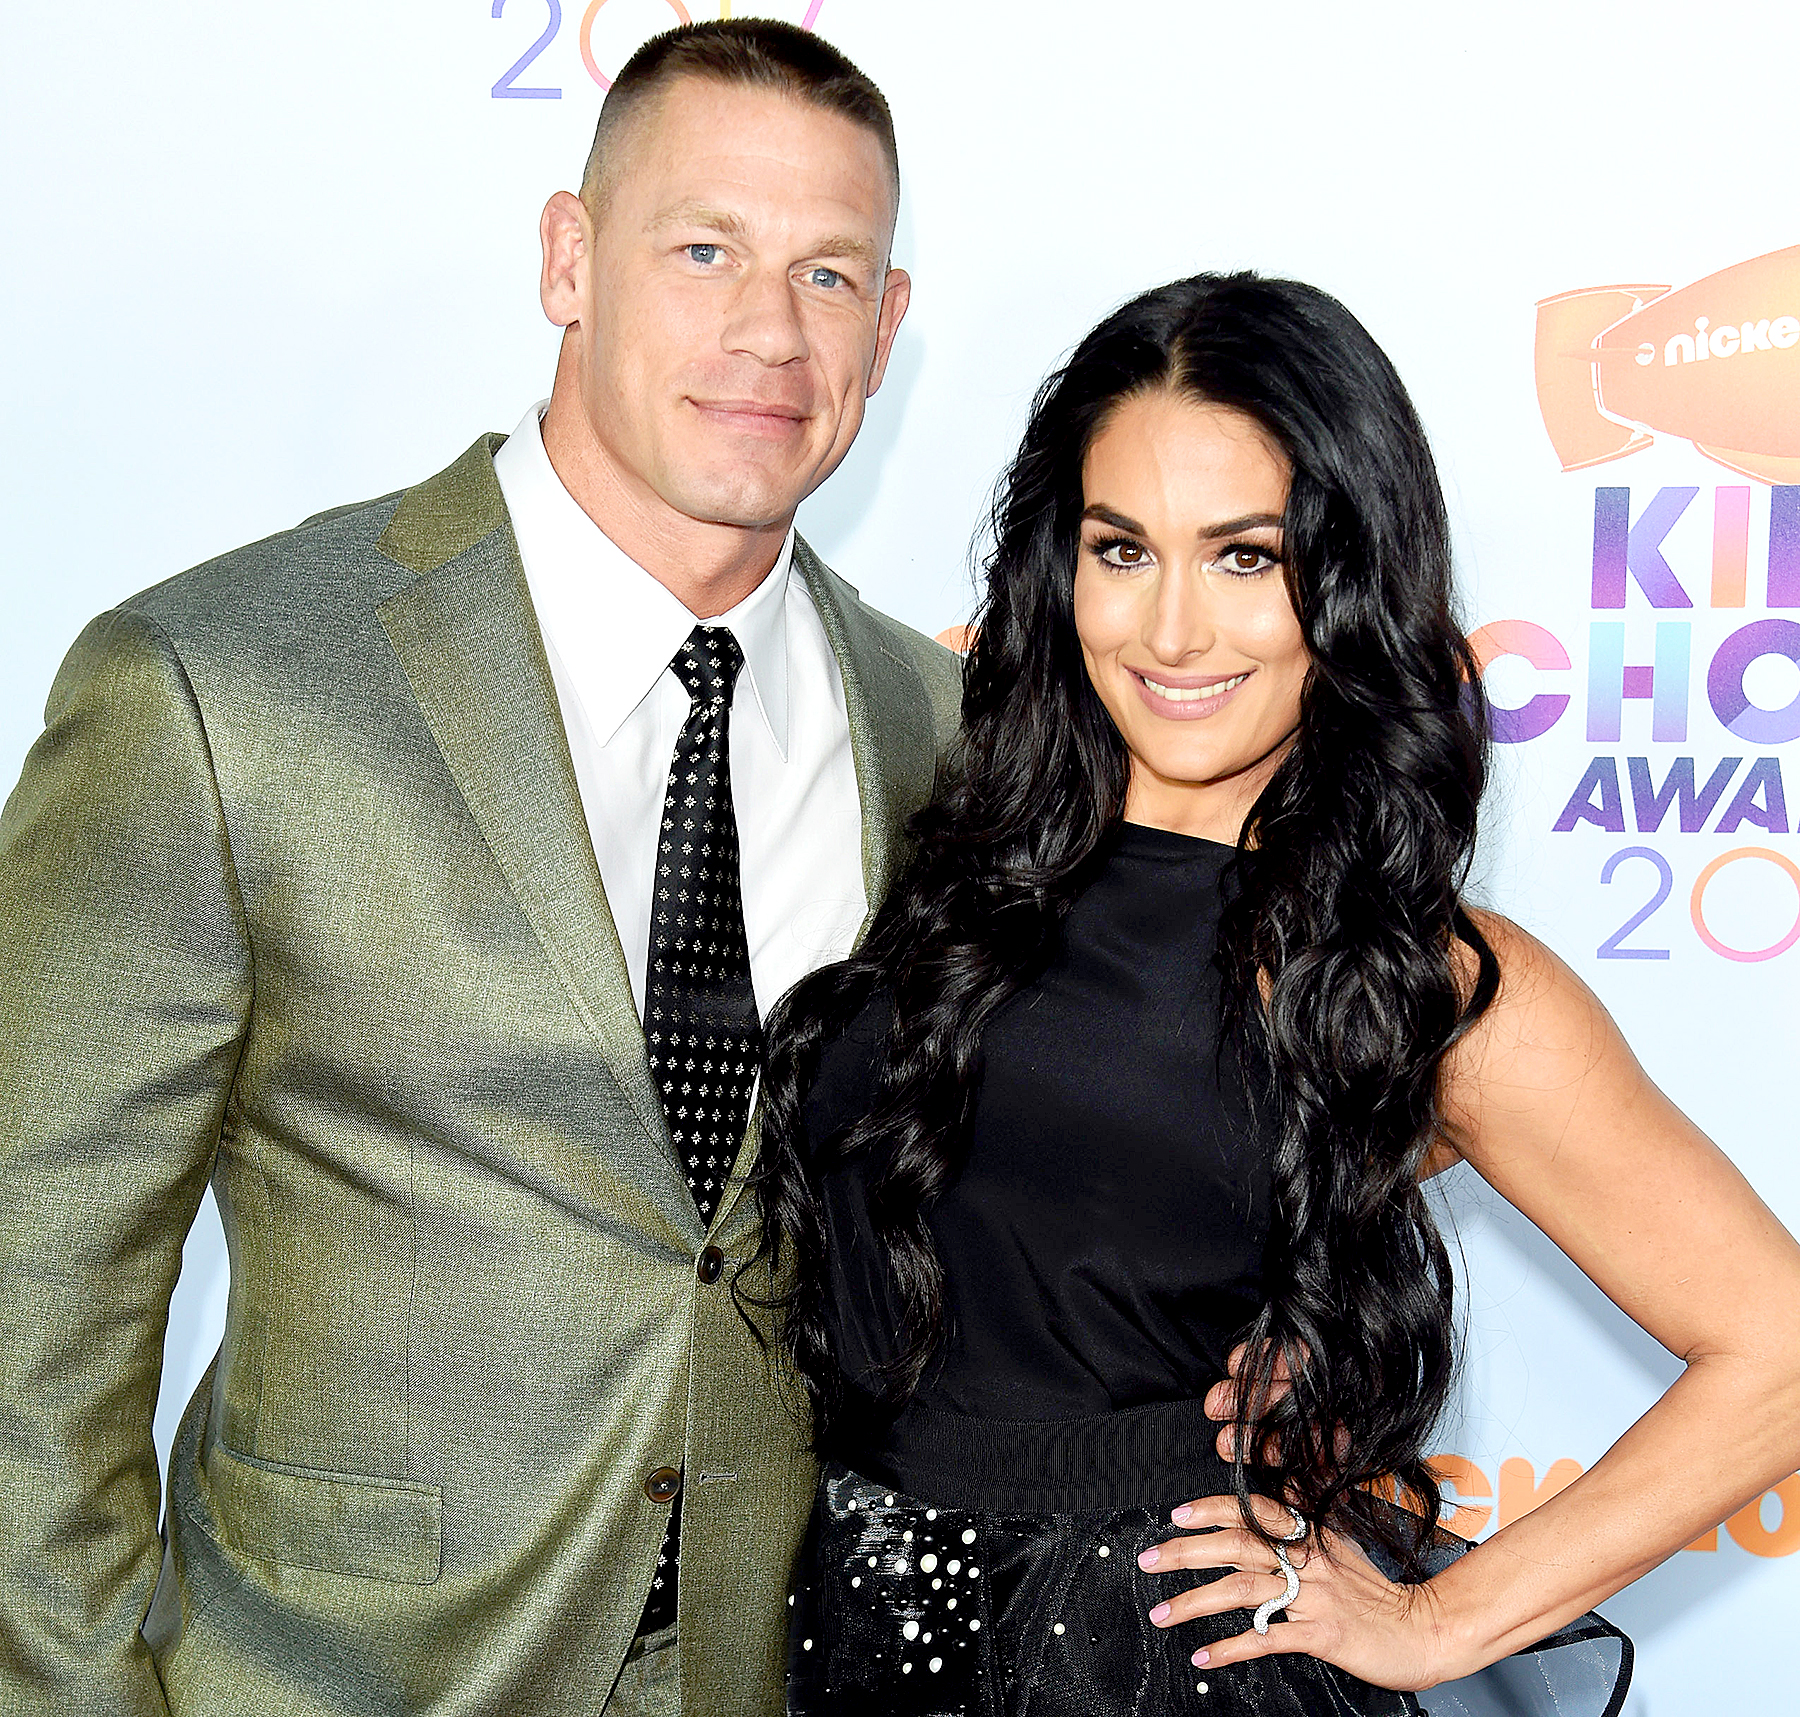 John Cena: \'I Had My Heart Broken Out of Nowhere\' by Nikki Bella